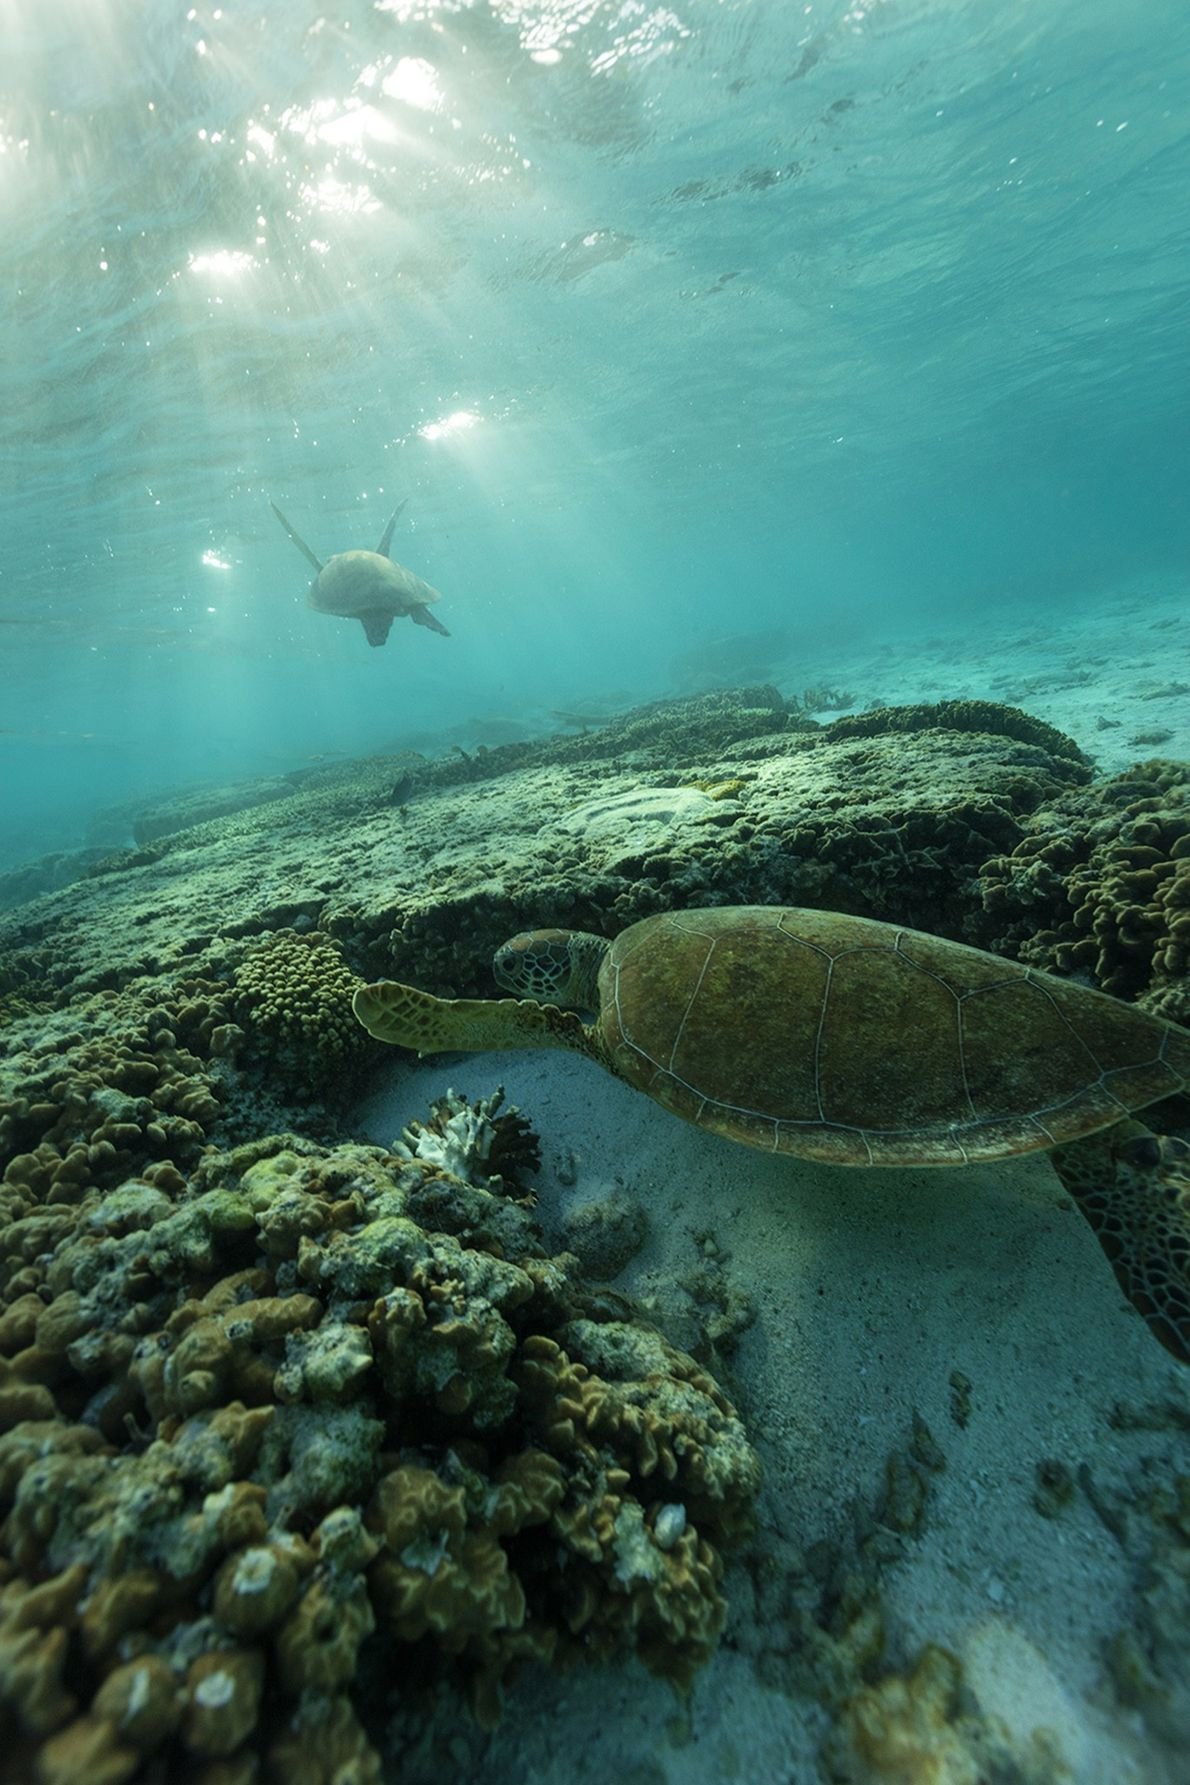 Sea turtles are seen swimming near Lady Elliot Island on a clear, autumn morning.